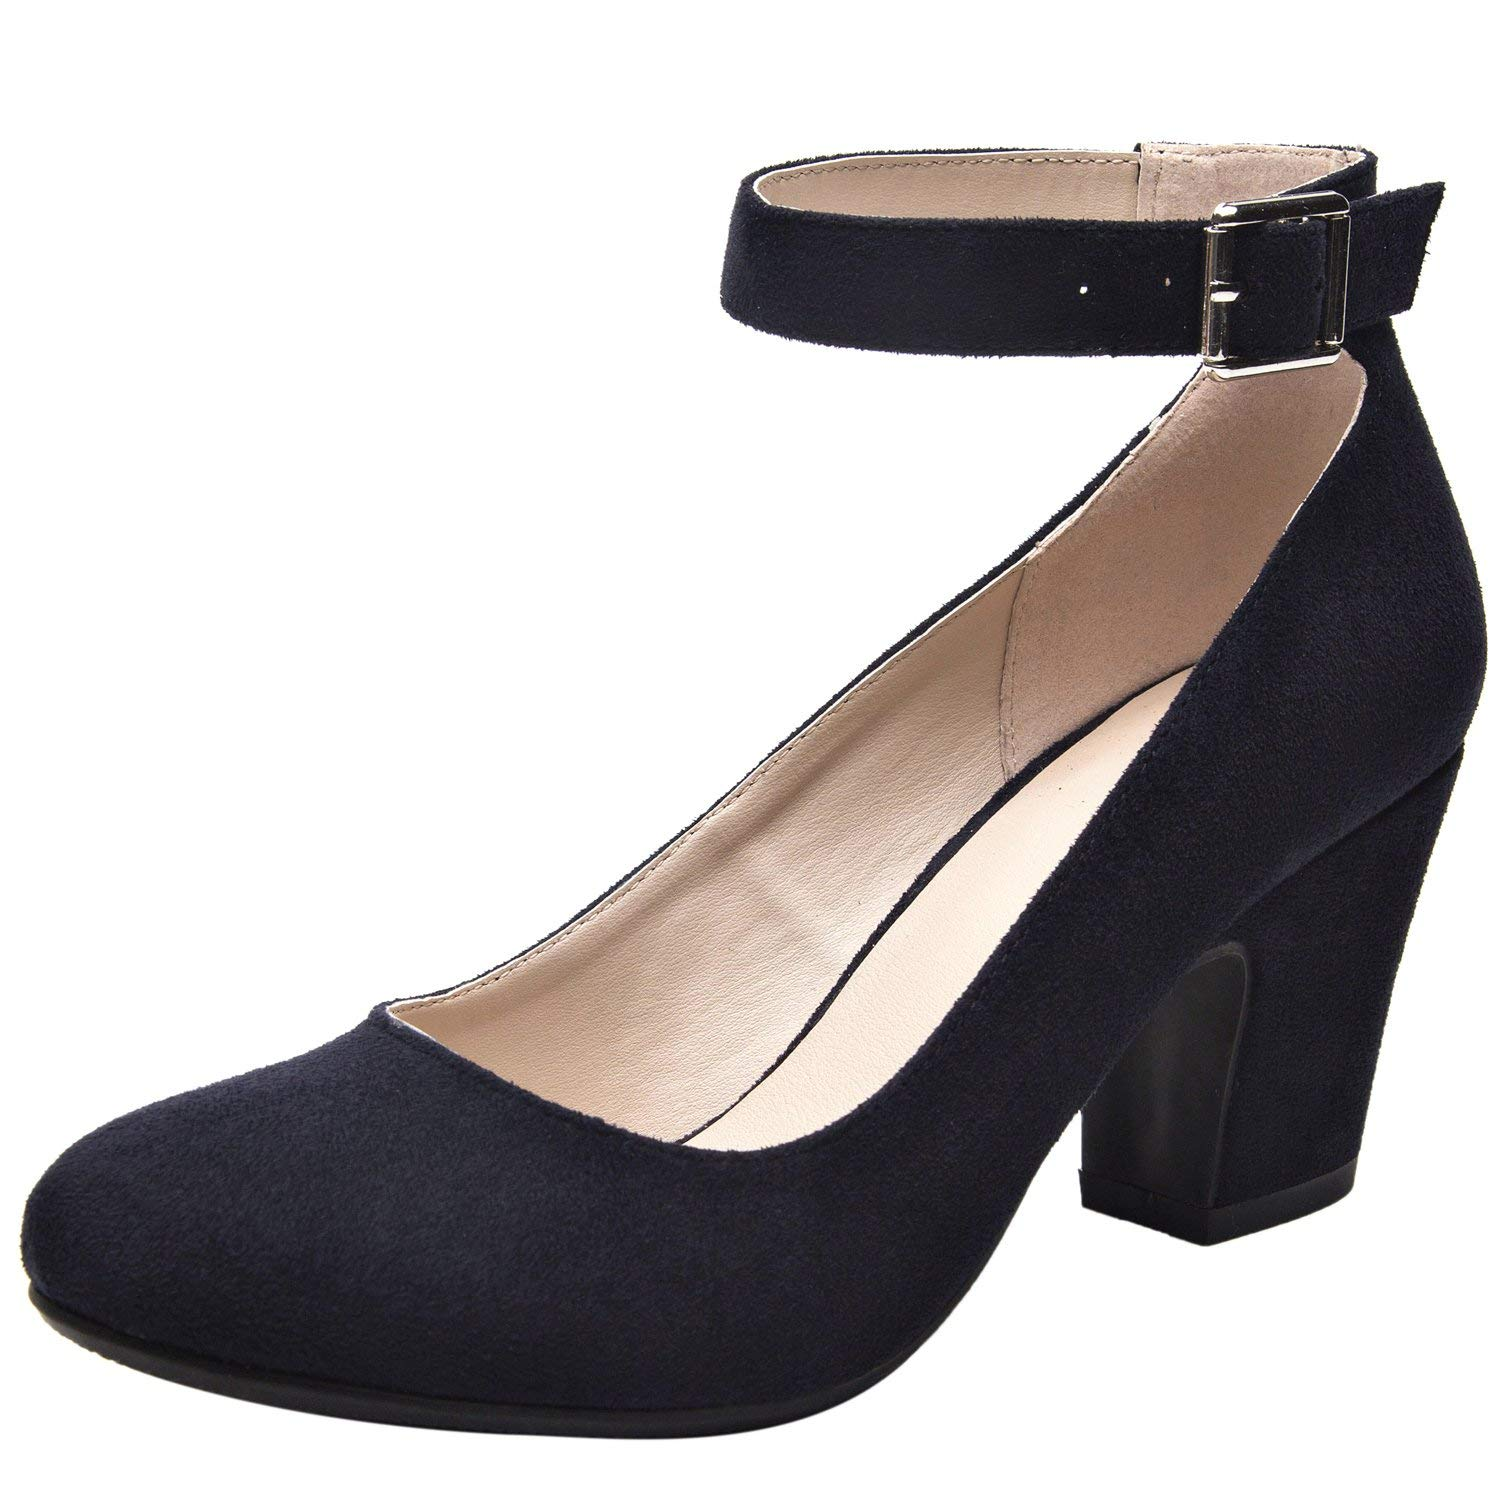 Luoika Women's Classic Heel Pump Shoes - Stacked Mid Heel Round Toe Adjustable Ankle Strap